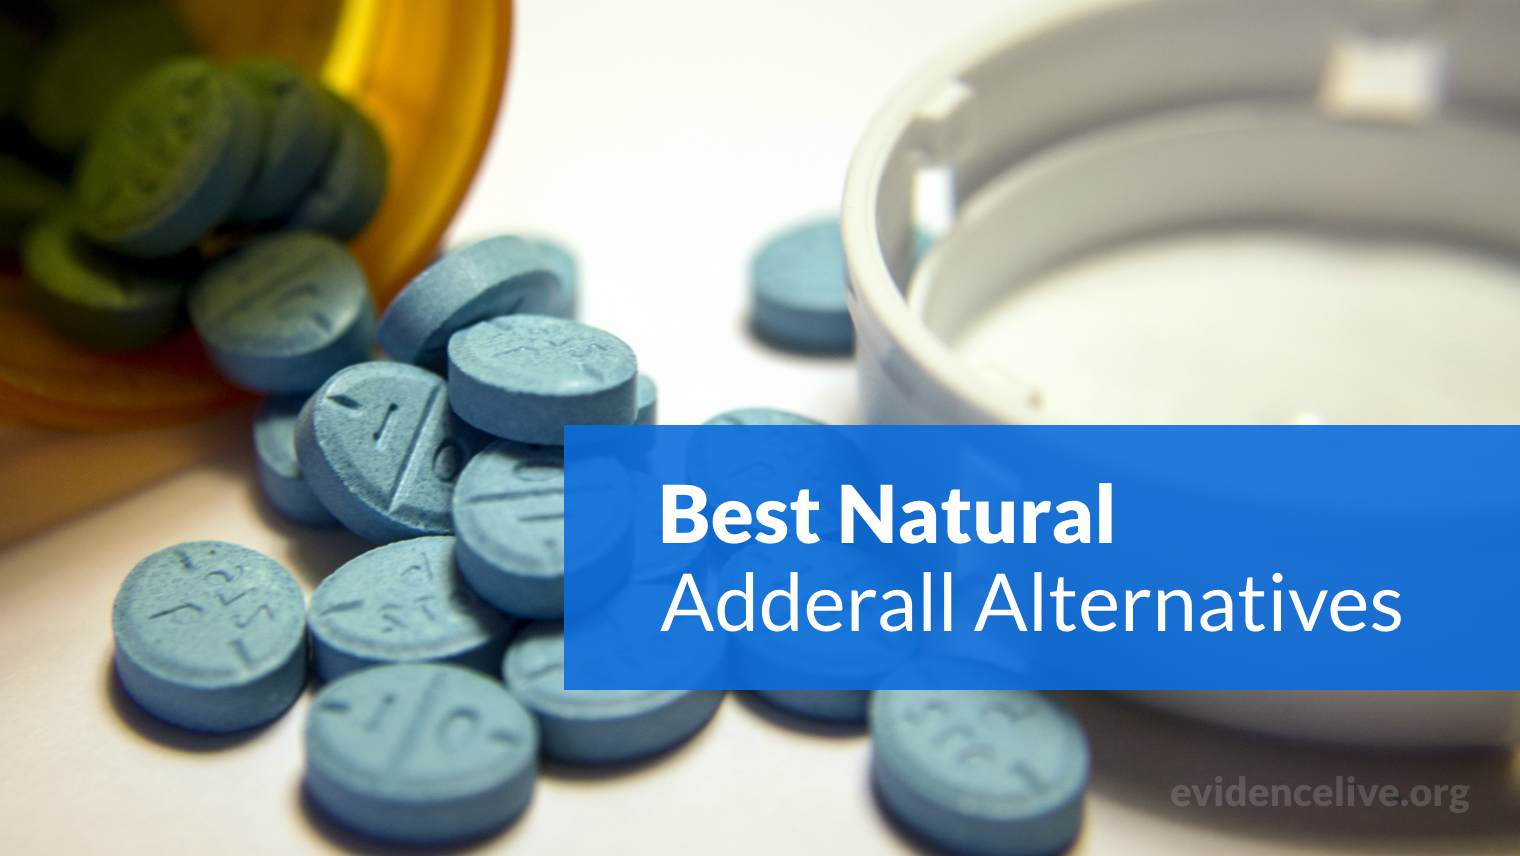 Best Natural Adderall Alternatives Over The Counter